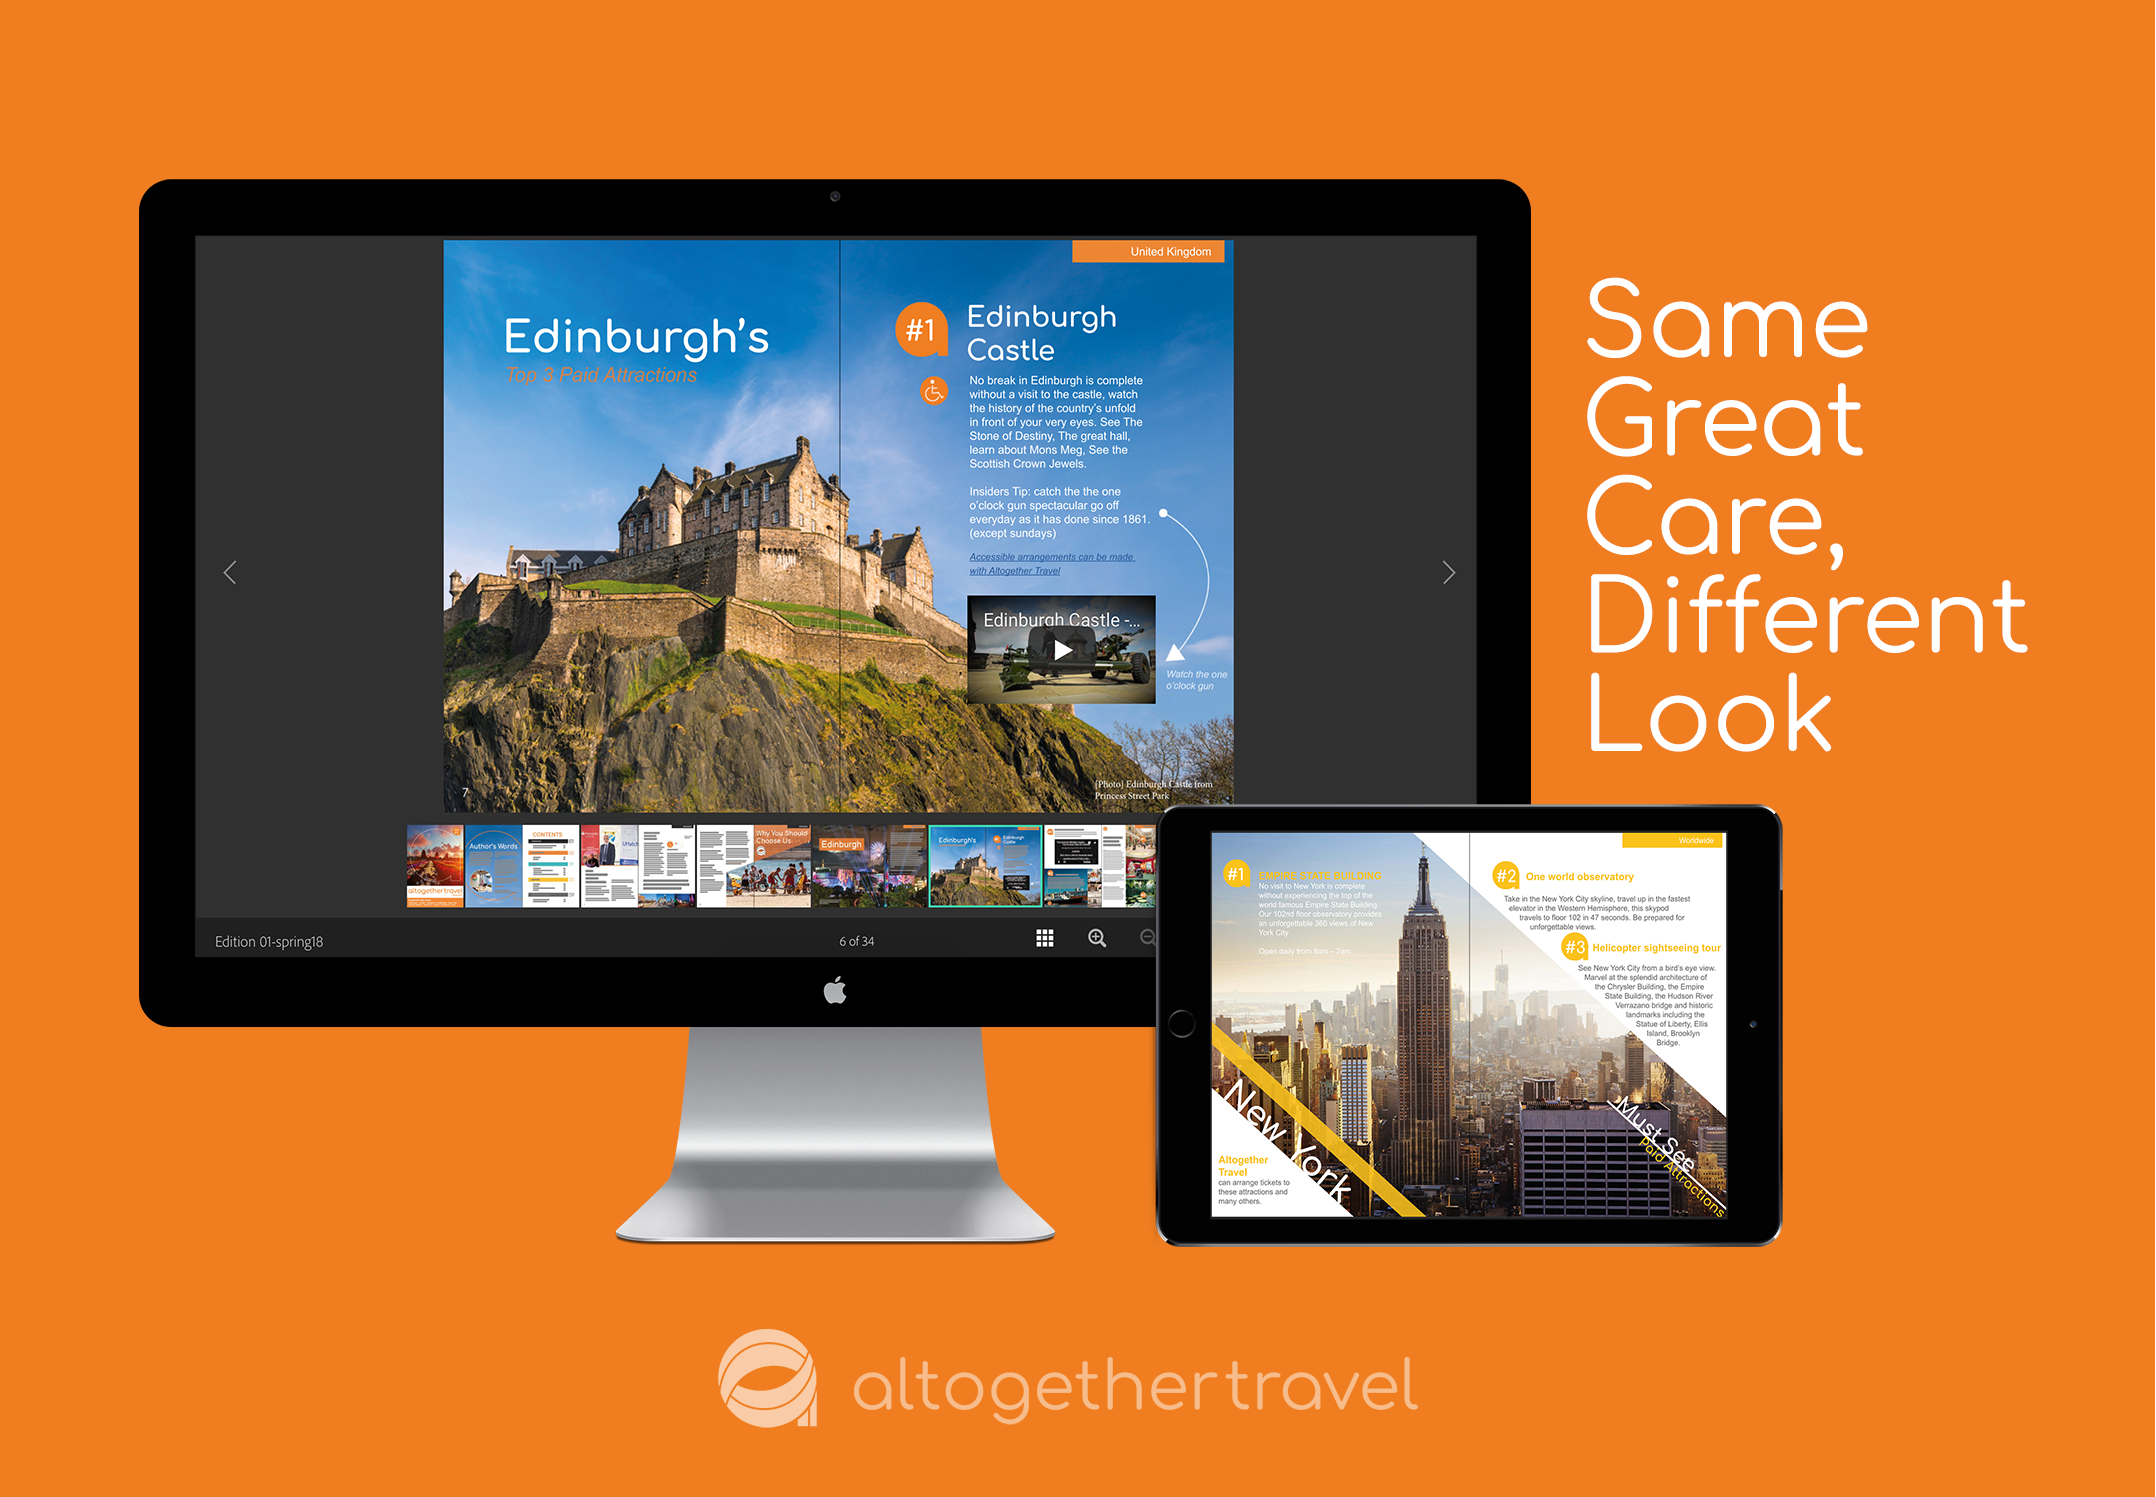 Altogether Travel Rebrand and Publication